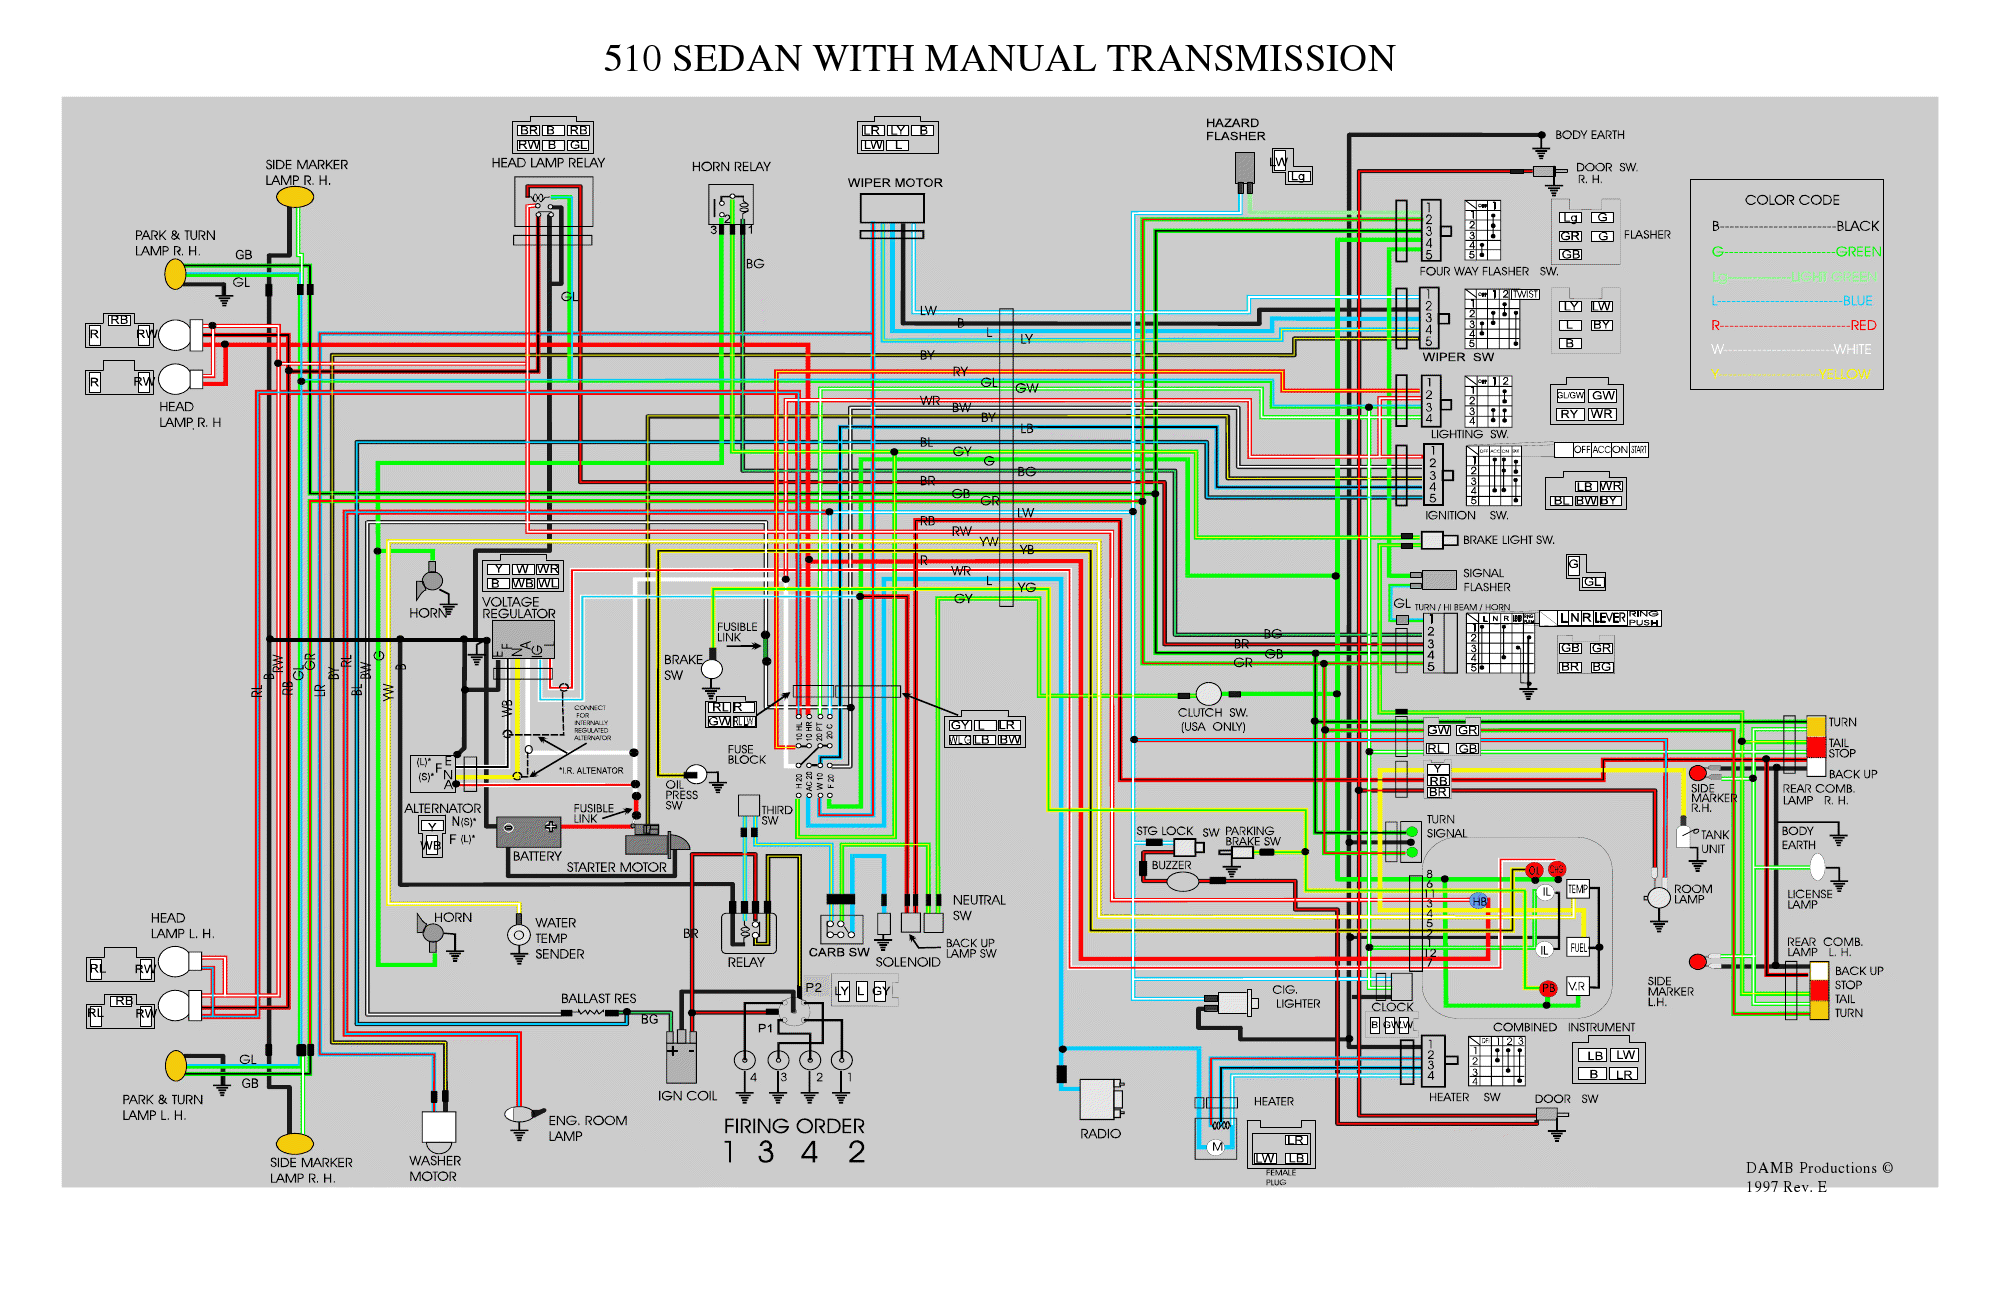 datsun_510_wiring_diagram datsun 510 wiring diagram z car 280Z Wiring Diagram Color at fashall.co